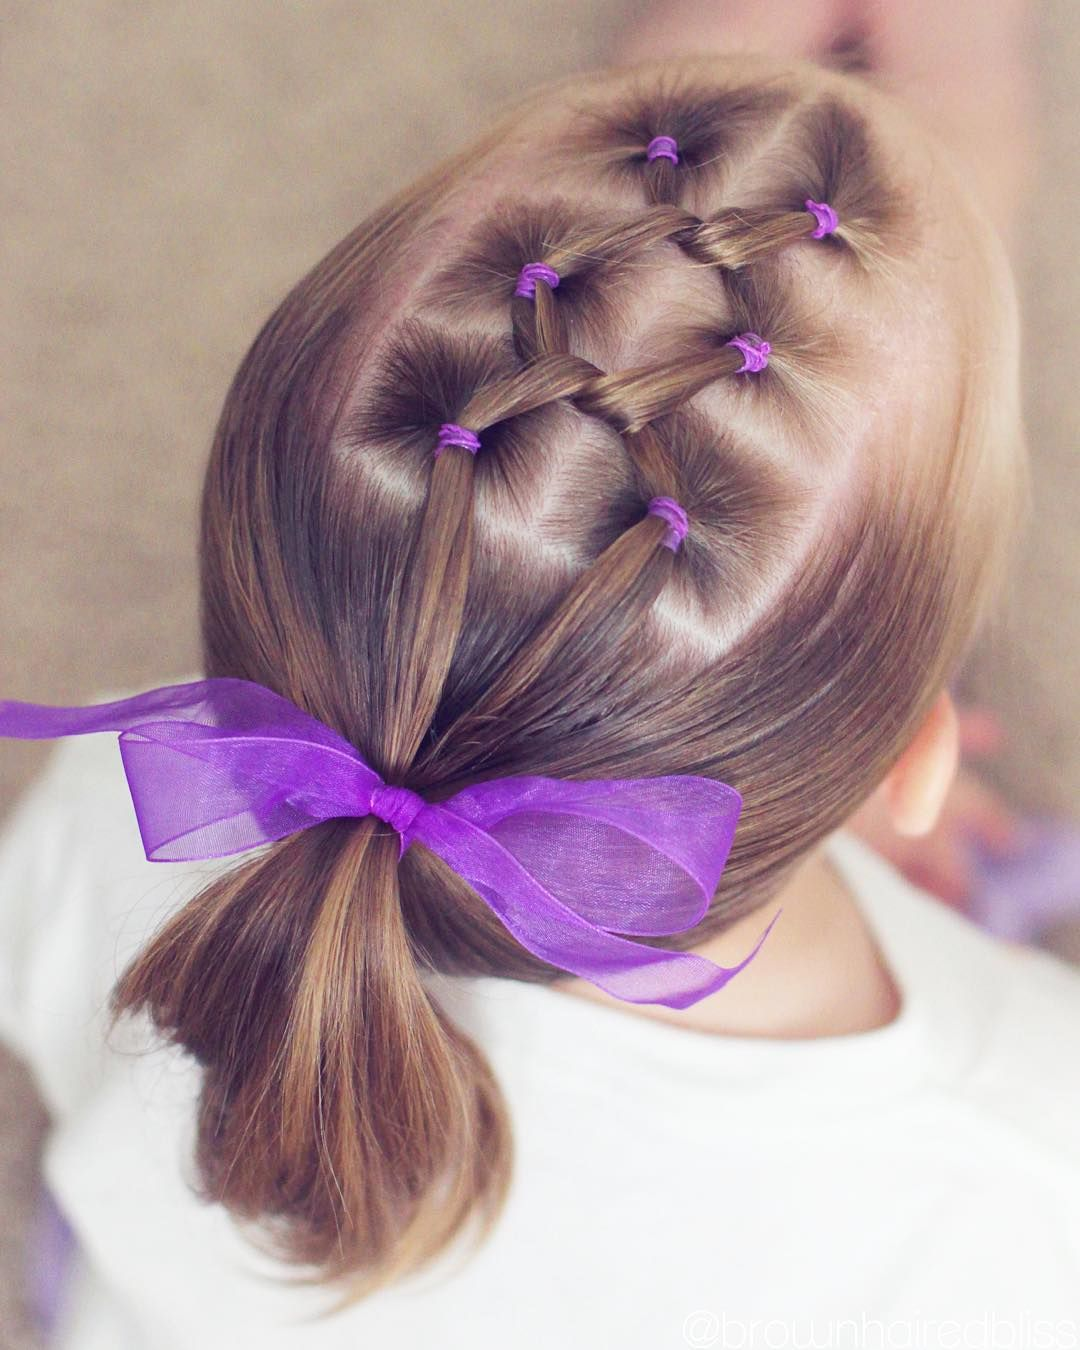 Hairstyles For Toddlers Enchanting 40 Cool Hairstyles For Little Girls On Any Occasion  Toddler